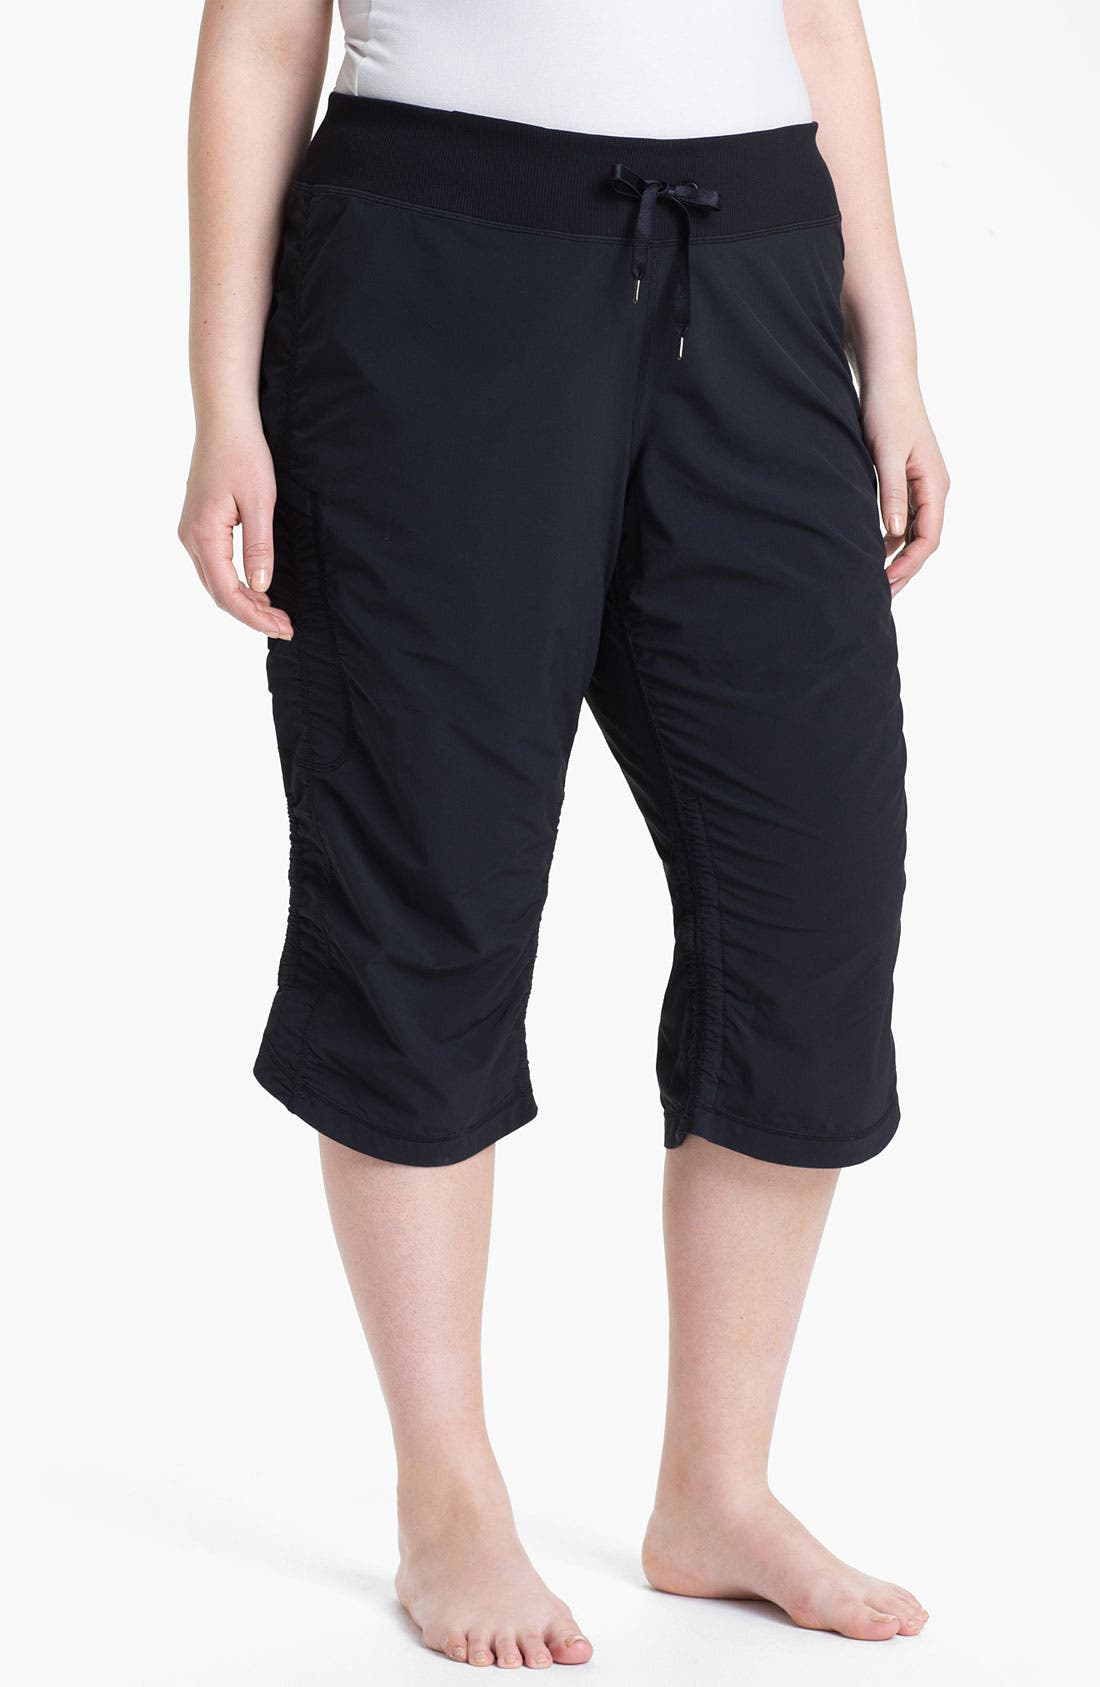 Main Image - Zella 'Move It' Capris (Plus Size)